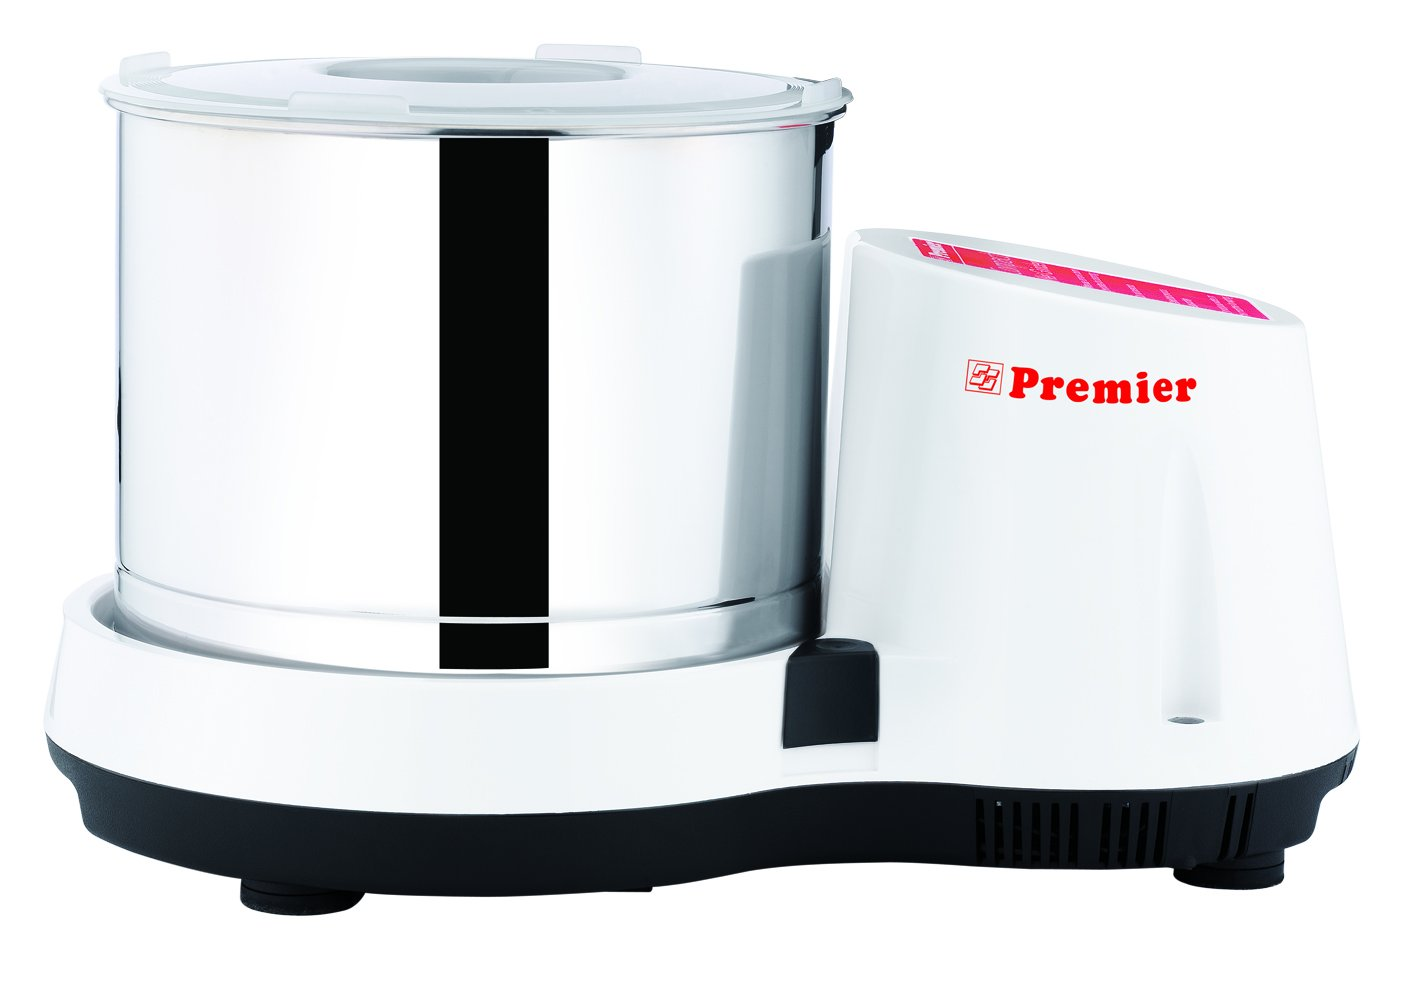 Premier Compact Table Top Wet Grinder -110volts 2 Ltrs by SS Premier